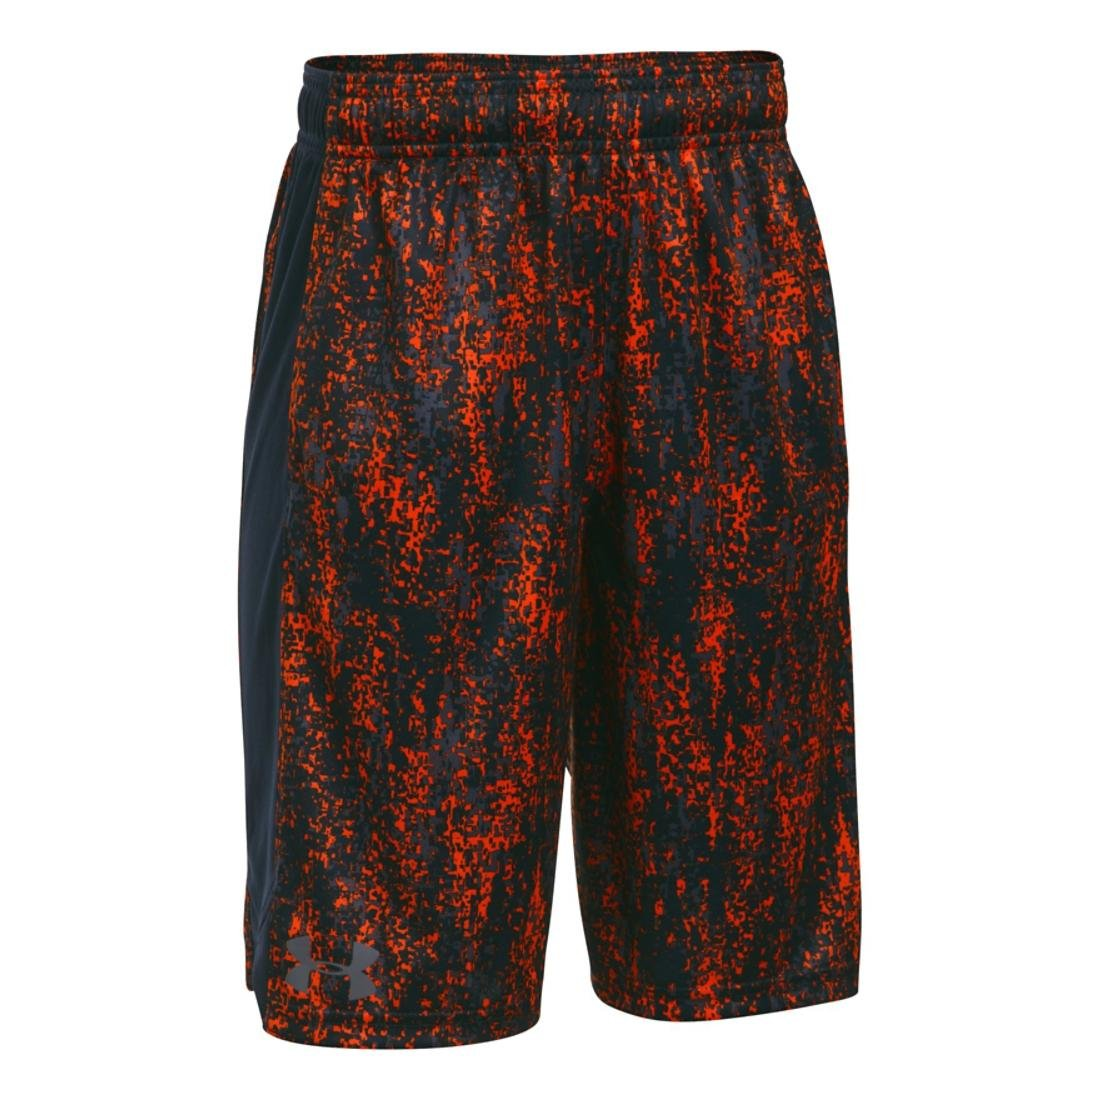 Under Armour Boys Eliminator Printed Short, Orange/Anthracite, MD (10-12 Big Kids) x One Size by Under Armour